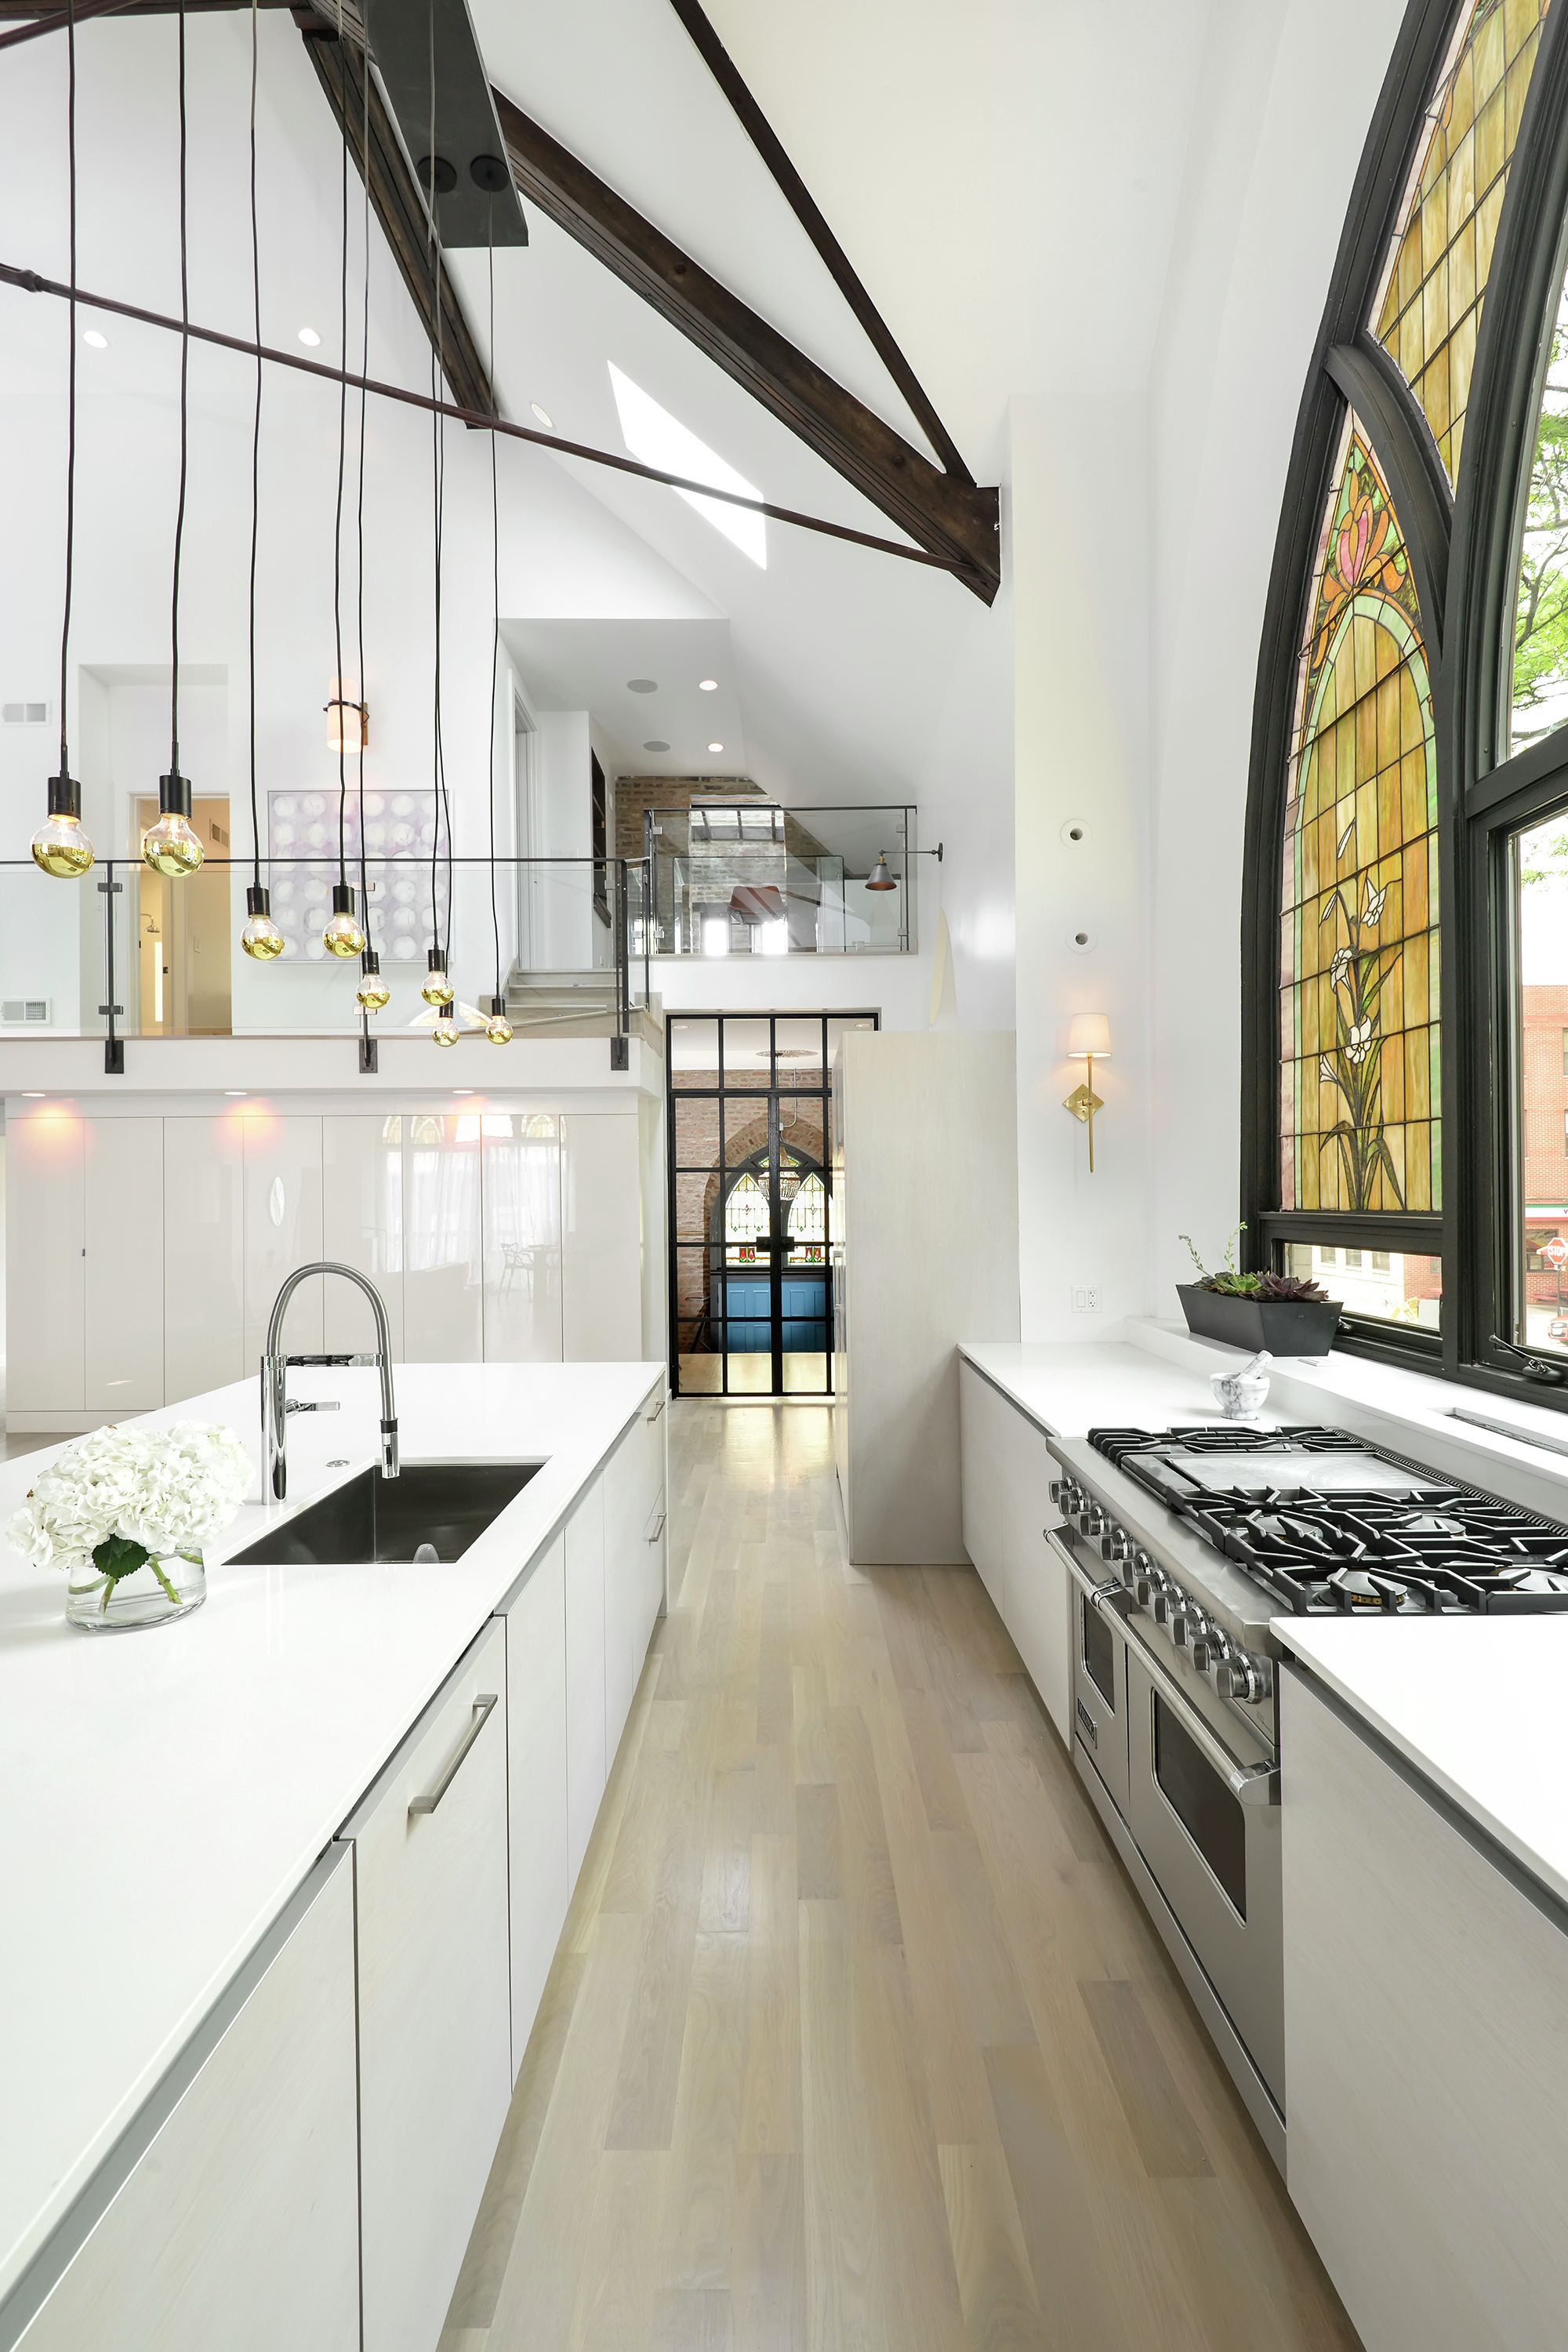 Church Conversion Into A Residence Linc Thelen Design Scrafano Architects Archdaily